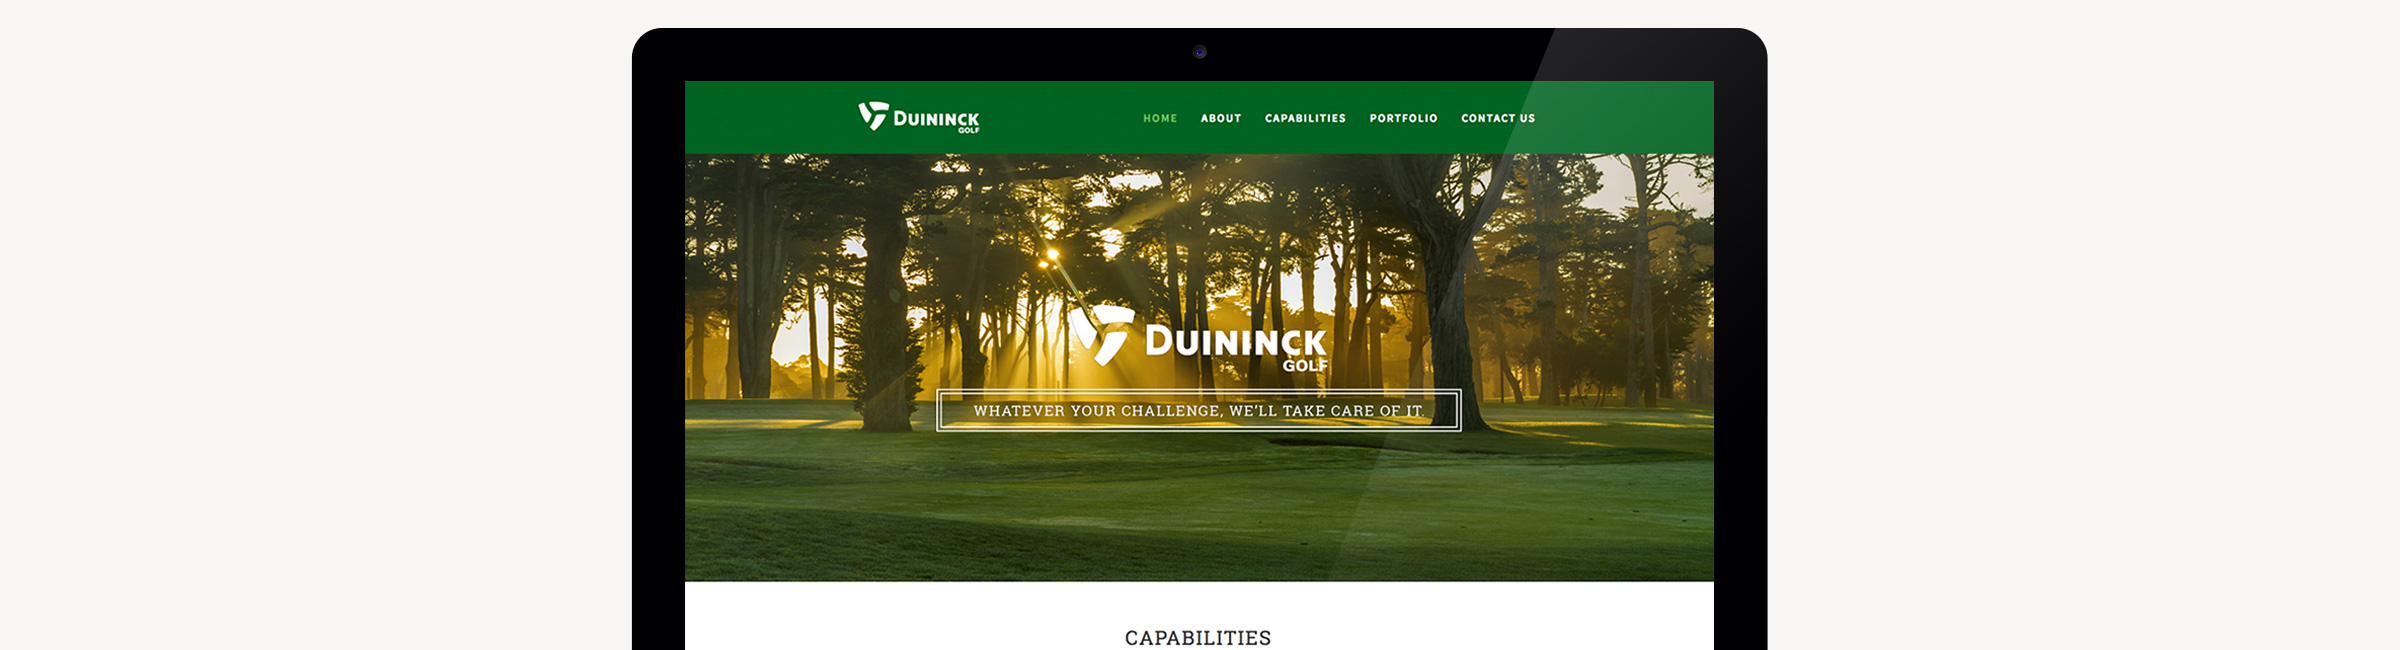 Duininck Golf Website Design | Macleod & Co. | Full Service Marketing Agency Minneapolis